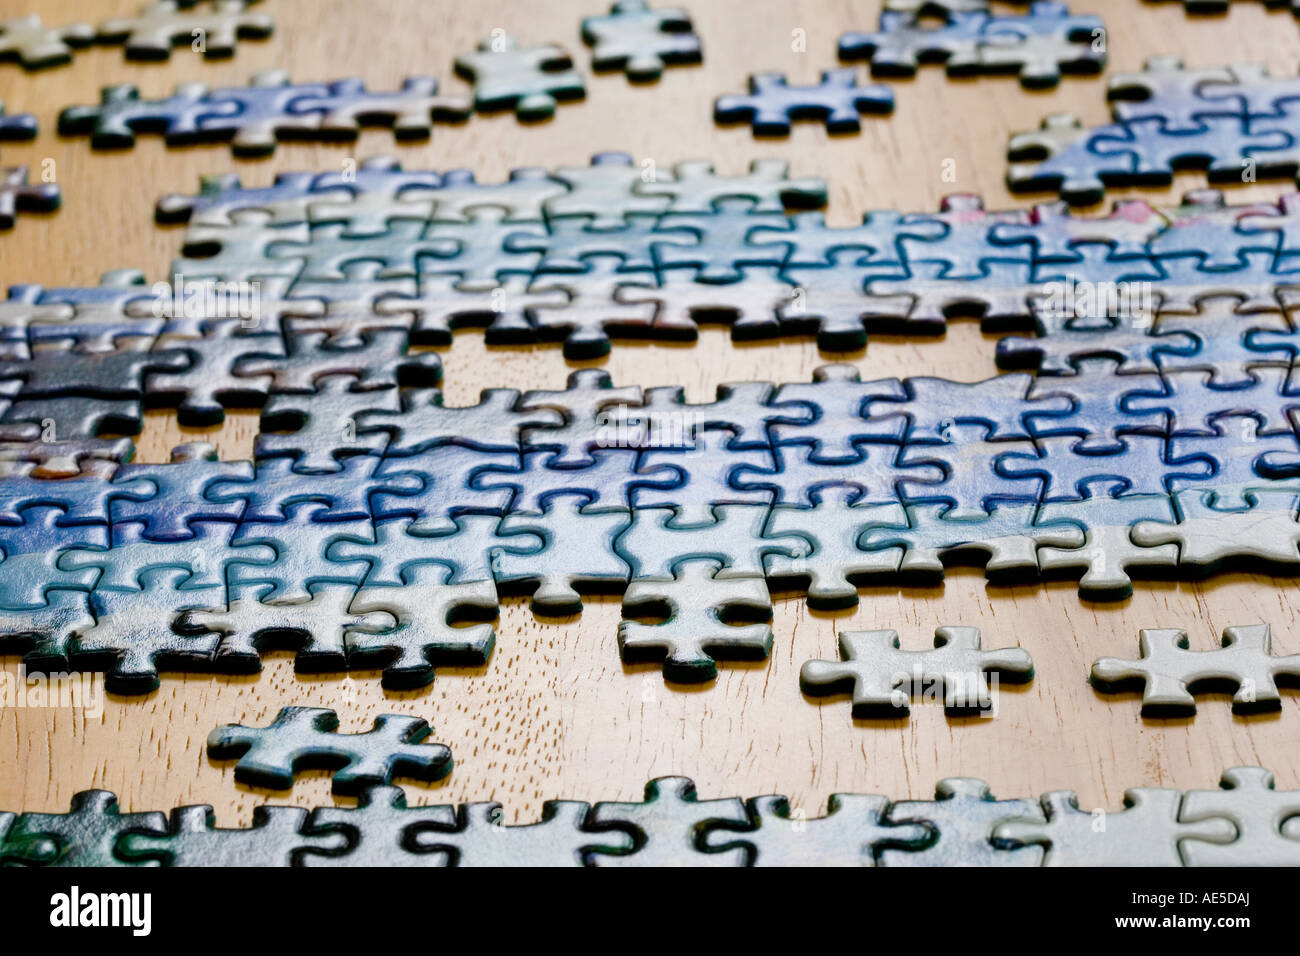 Pieces of jigsaw puzzle being put together on a table - Stock Image